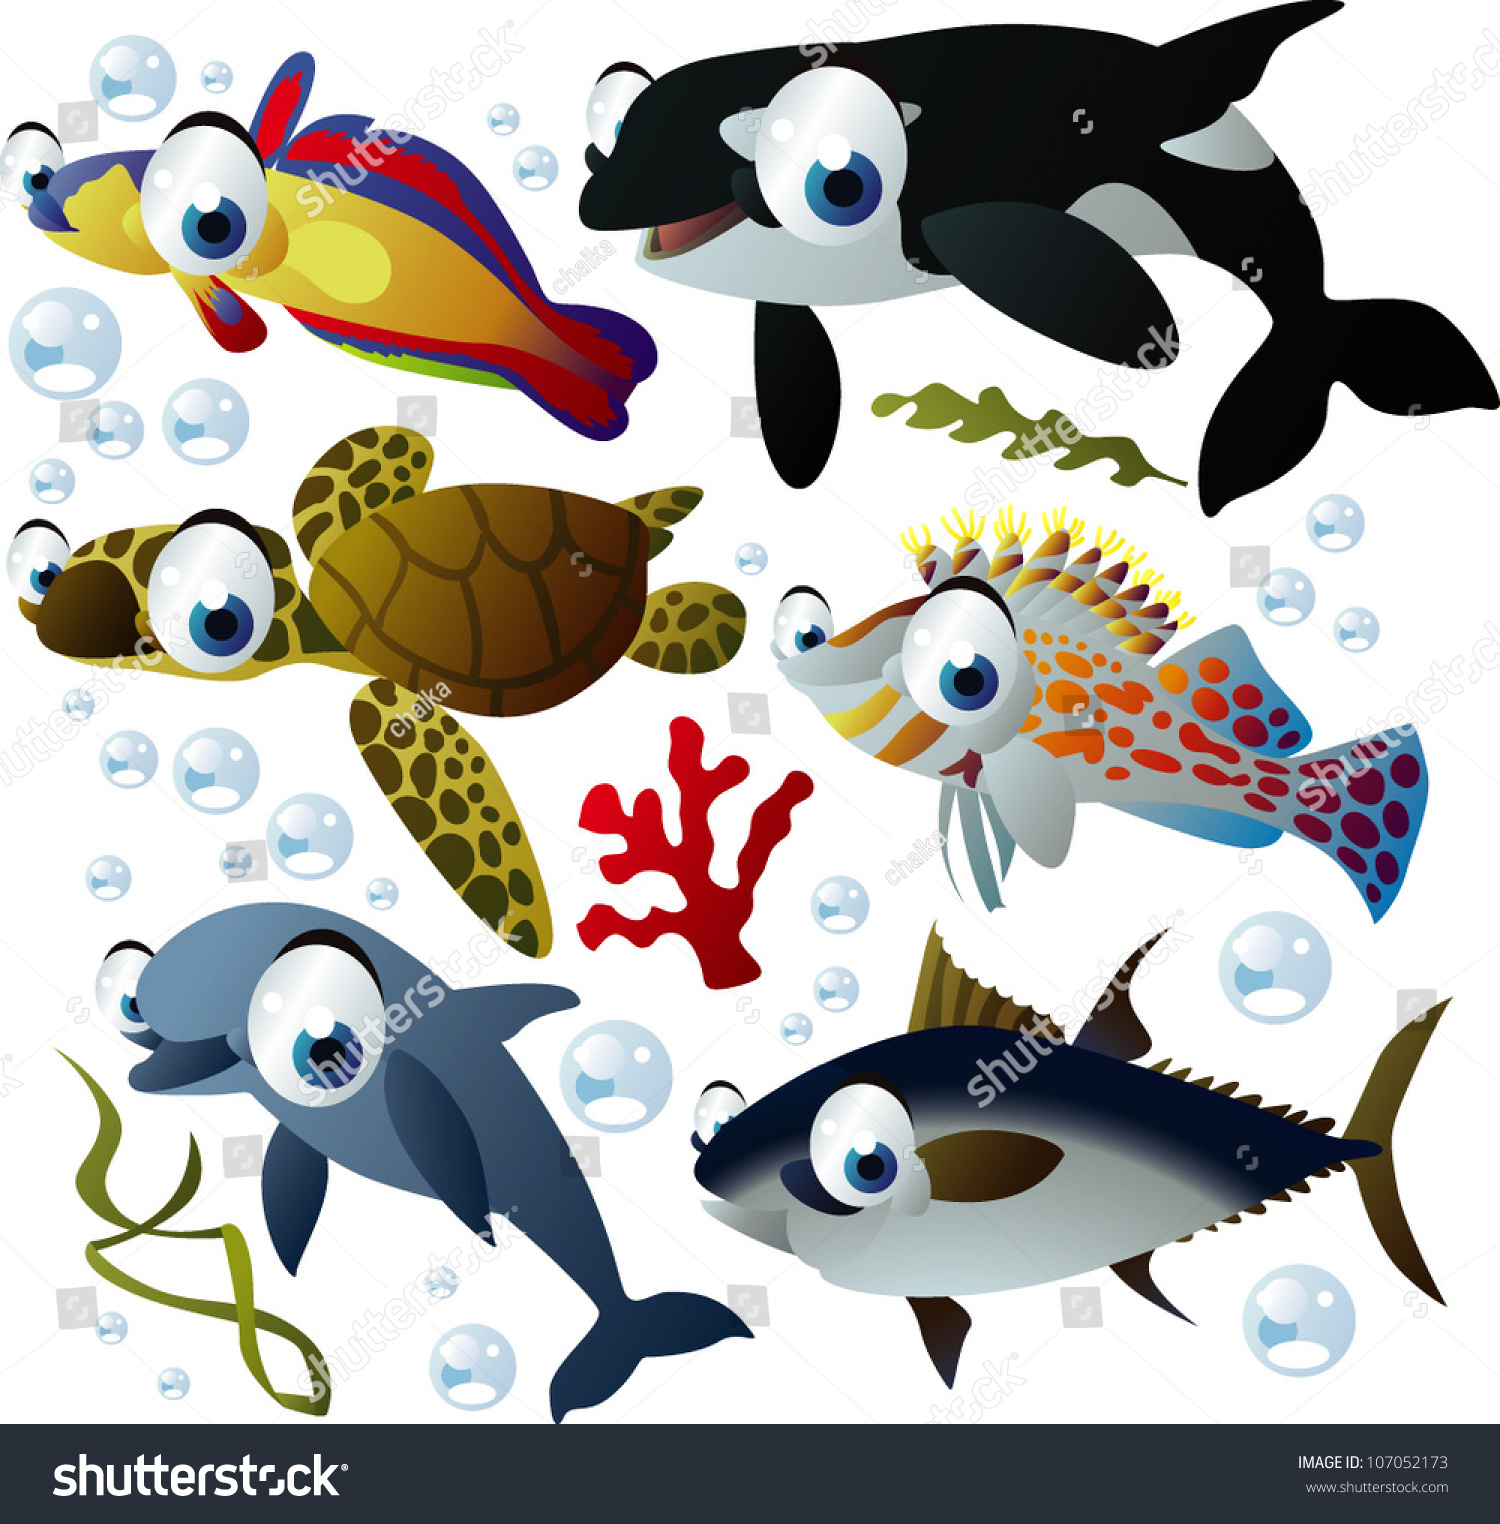 The coral reef frame border illustration for the children stock - Sea Life Animals Stock Vector Illustration 107052173